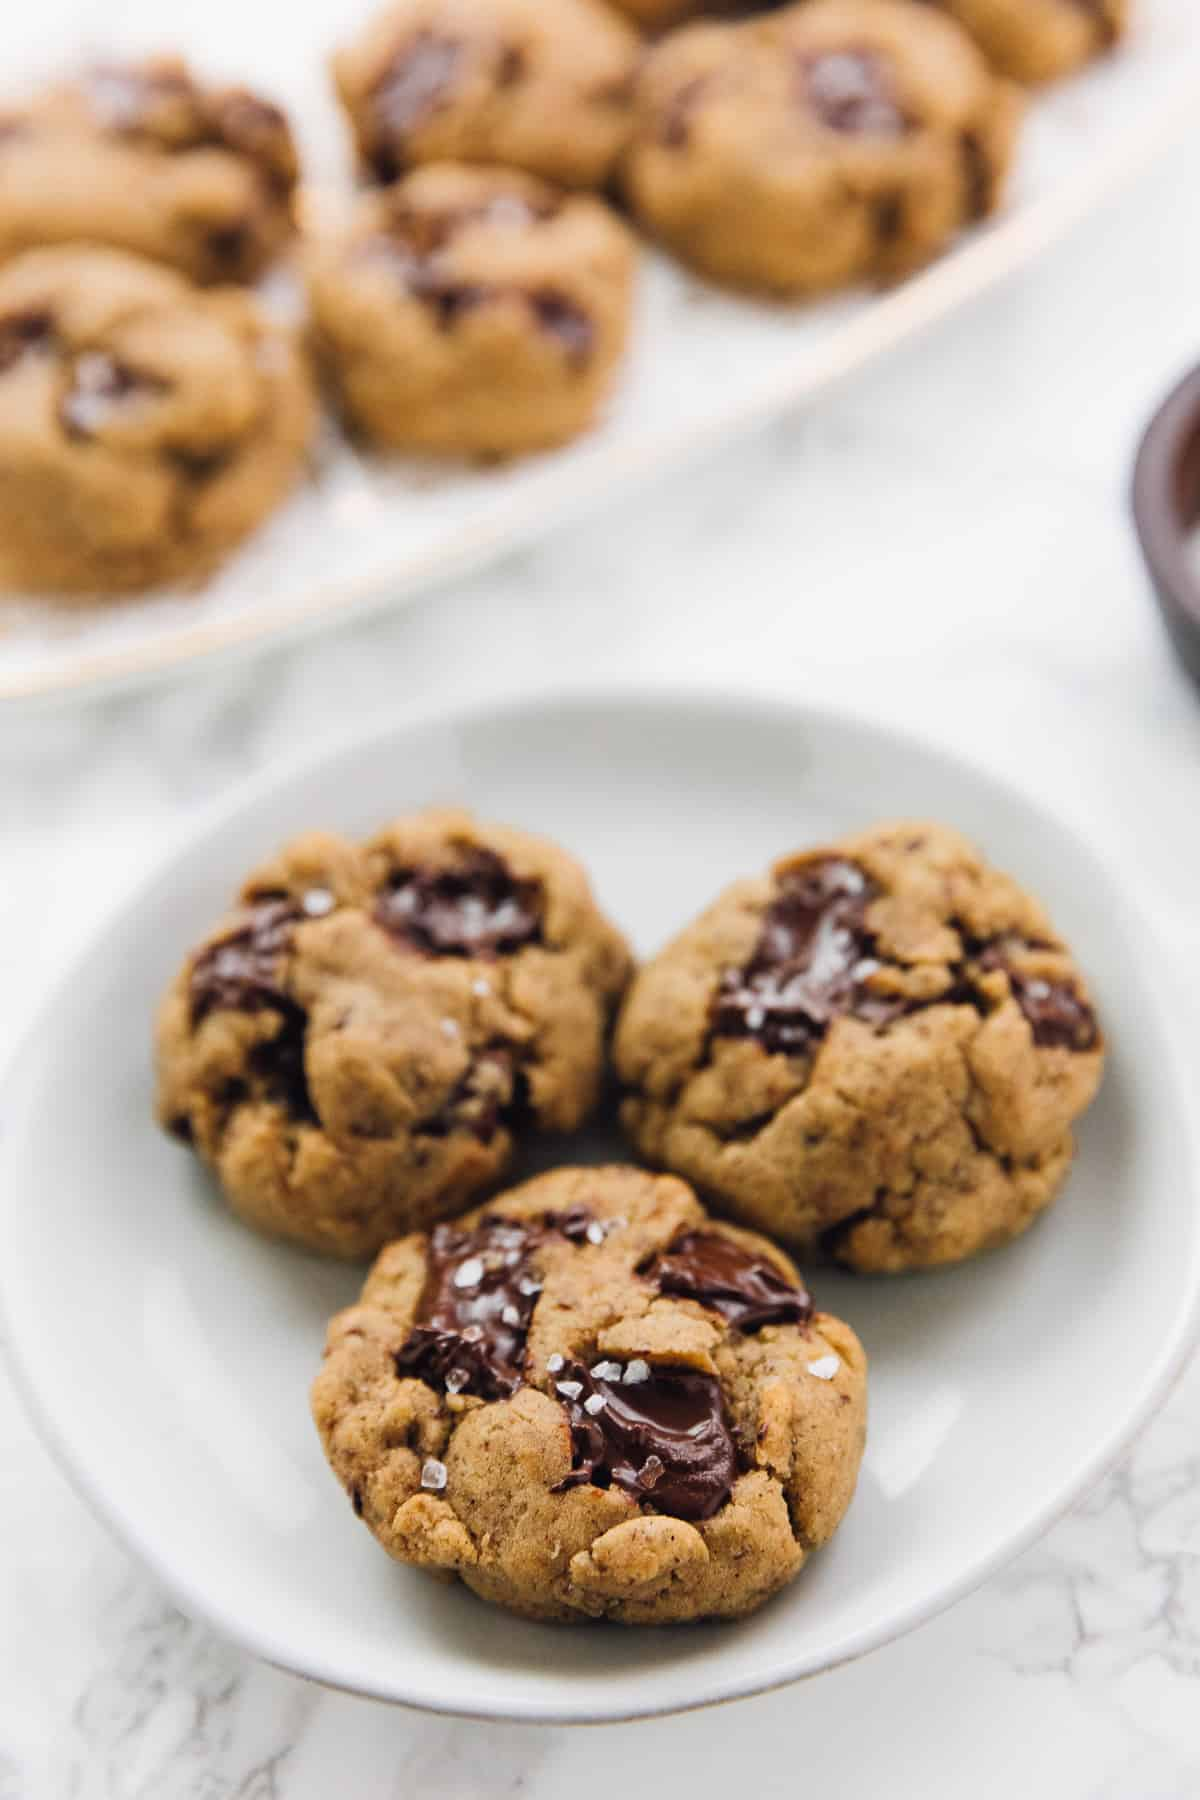 3 Salted chocolate chip tahini cookies on a plate with other cookies in the background